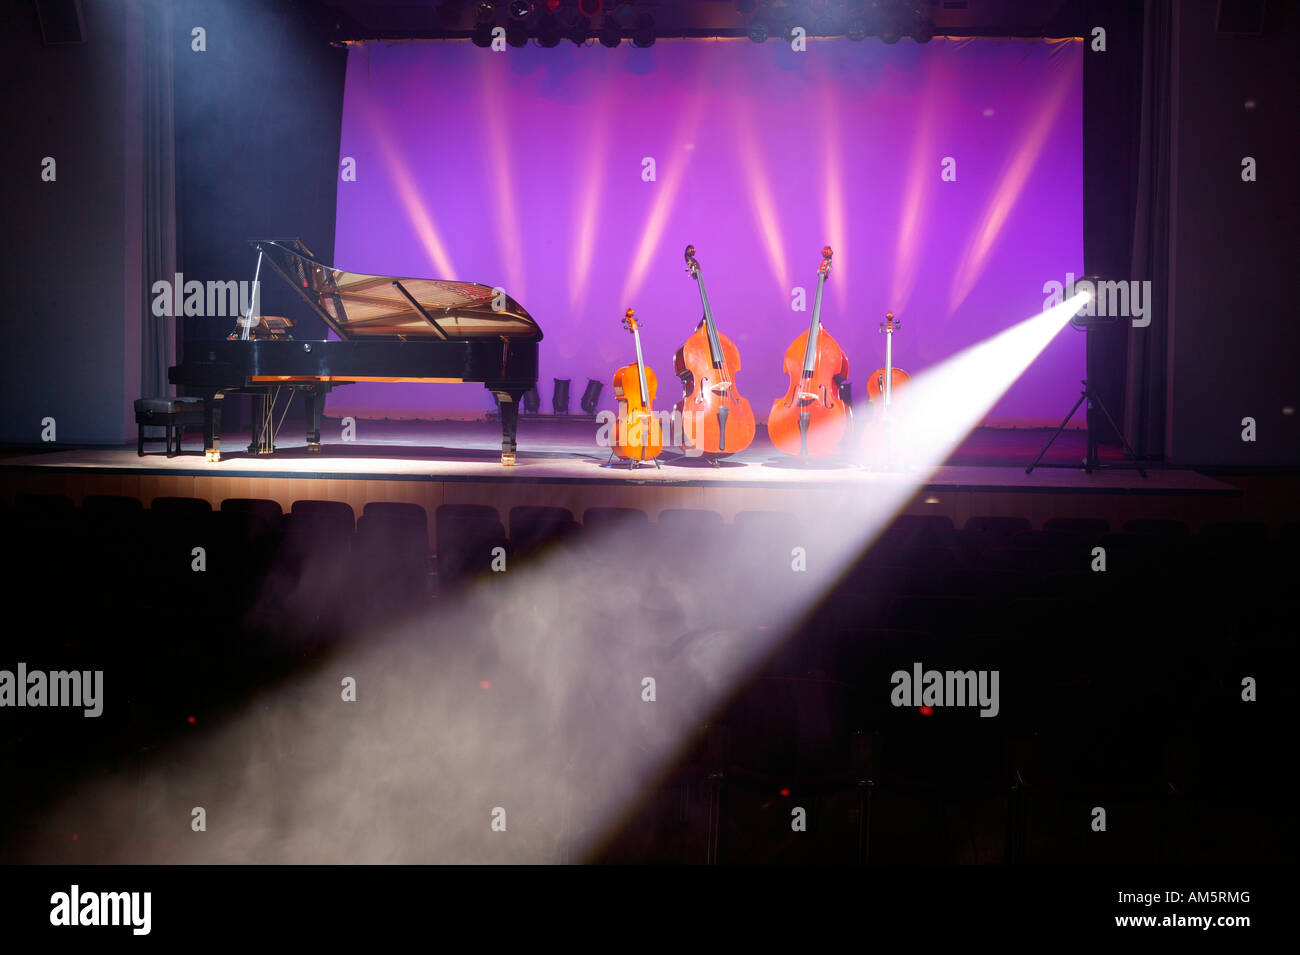 Stringed instruments and piano on stage, fog and spots - Stock Image